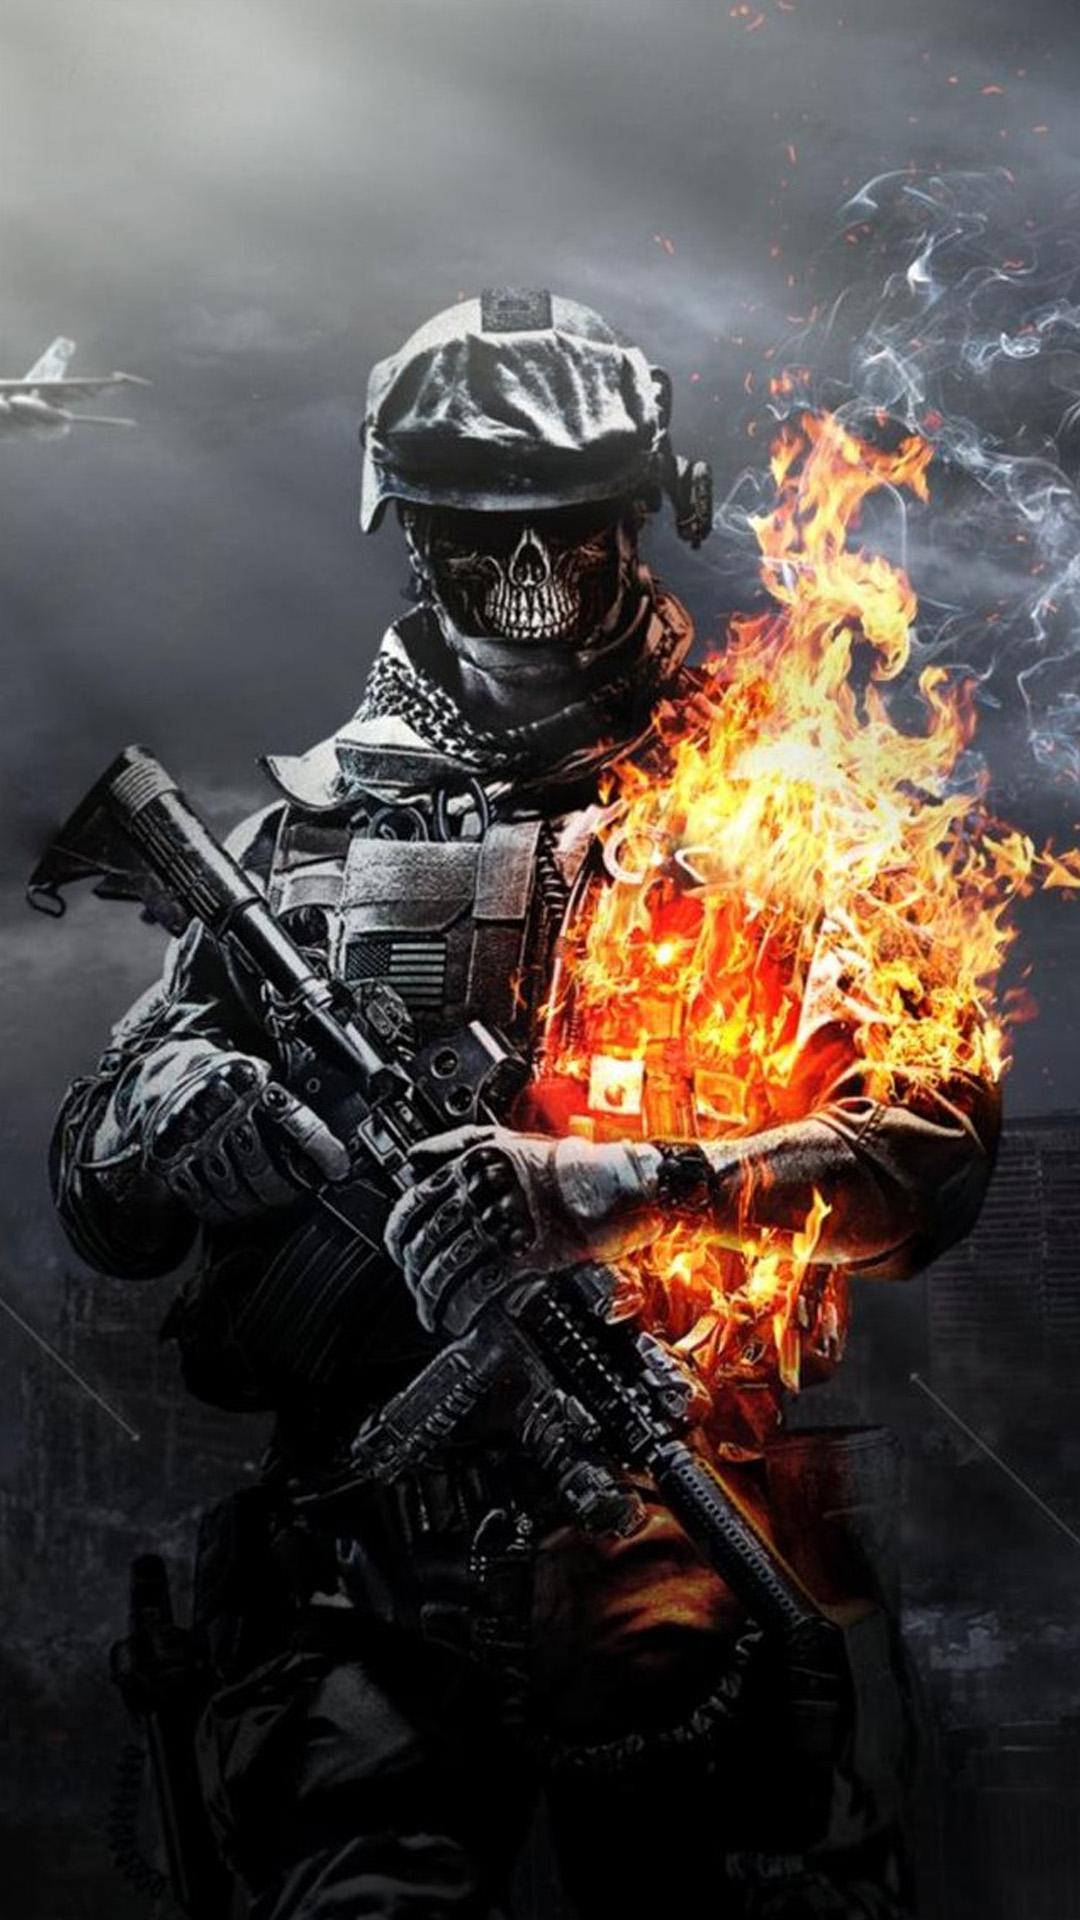 Call Of Duty Wallpaper Android Posted By Sarah Thompson